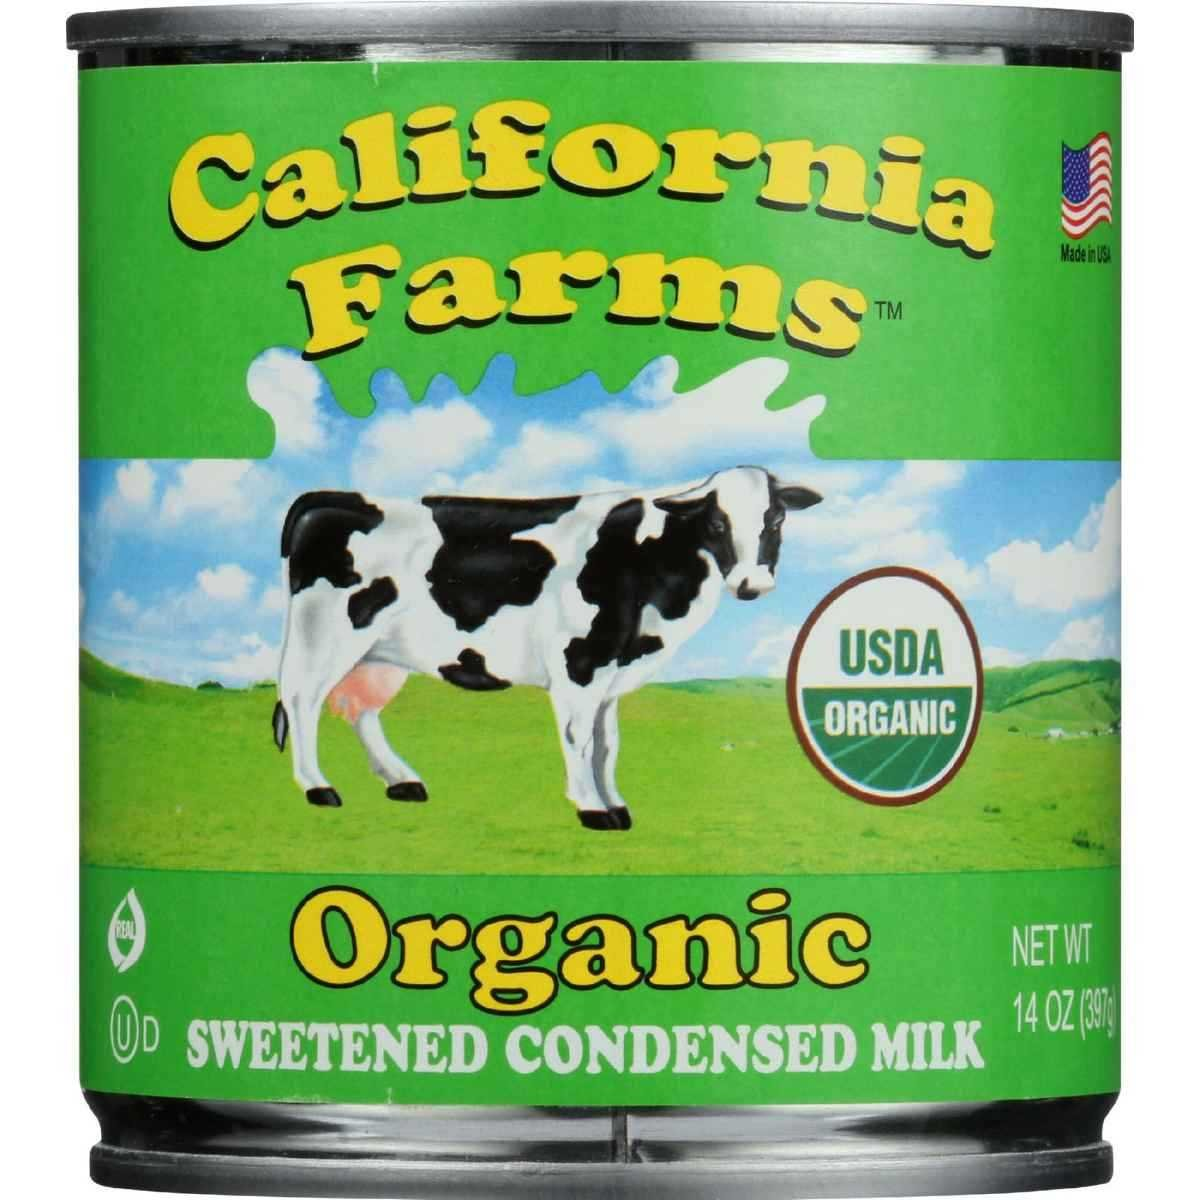 California Farms Condensed Milk - Organic - Sweetened - 14 oz - case of 24